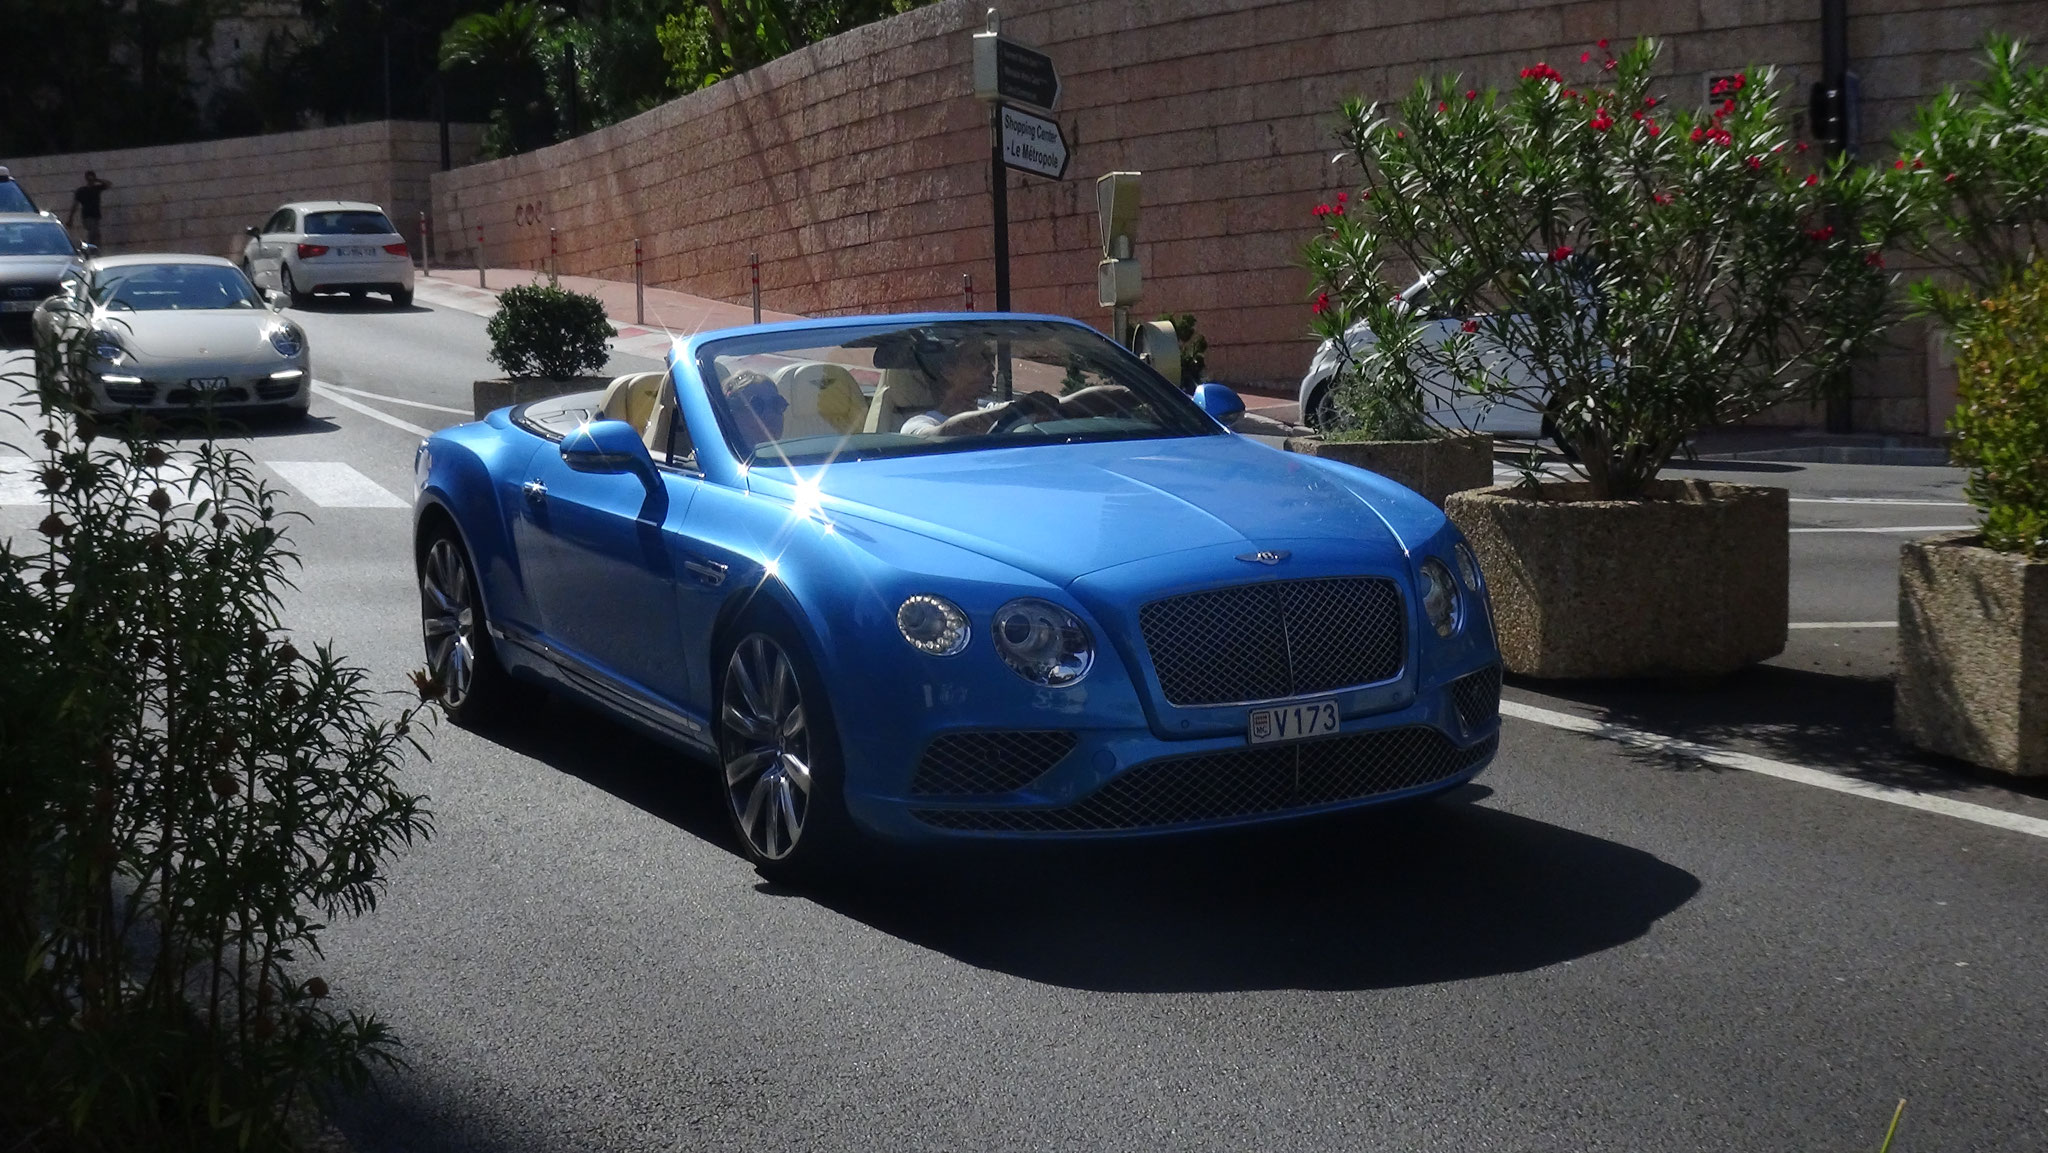 Bentley Continental GTC V8 S - V173 (MC)